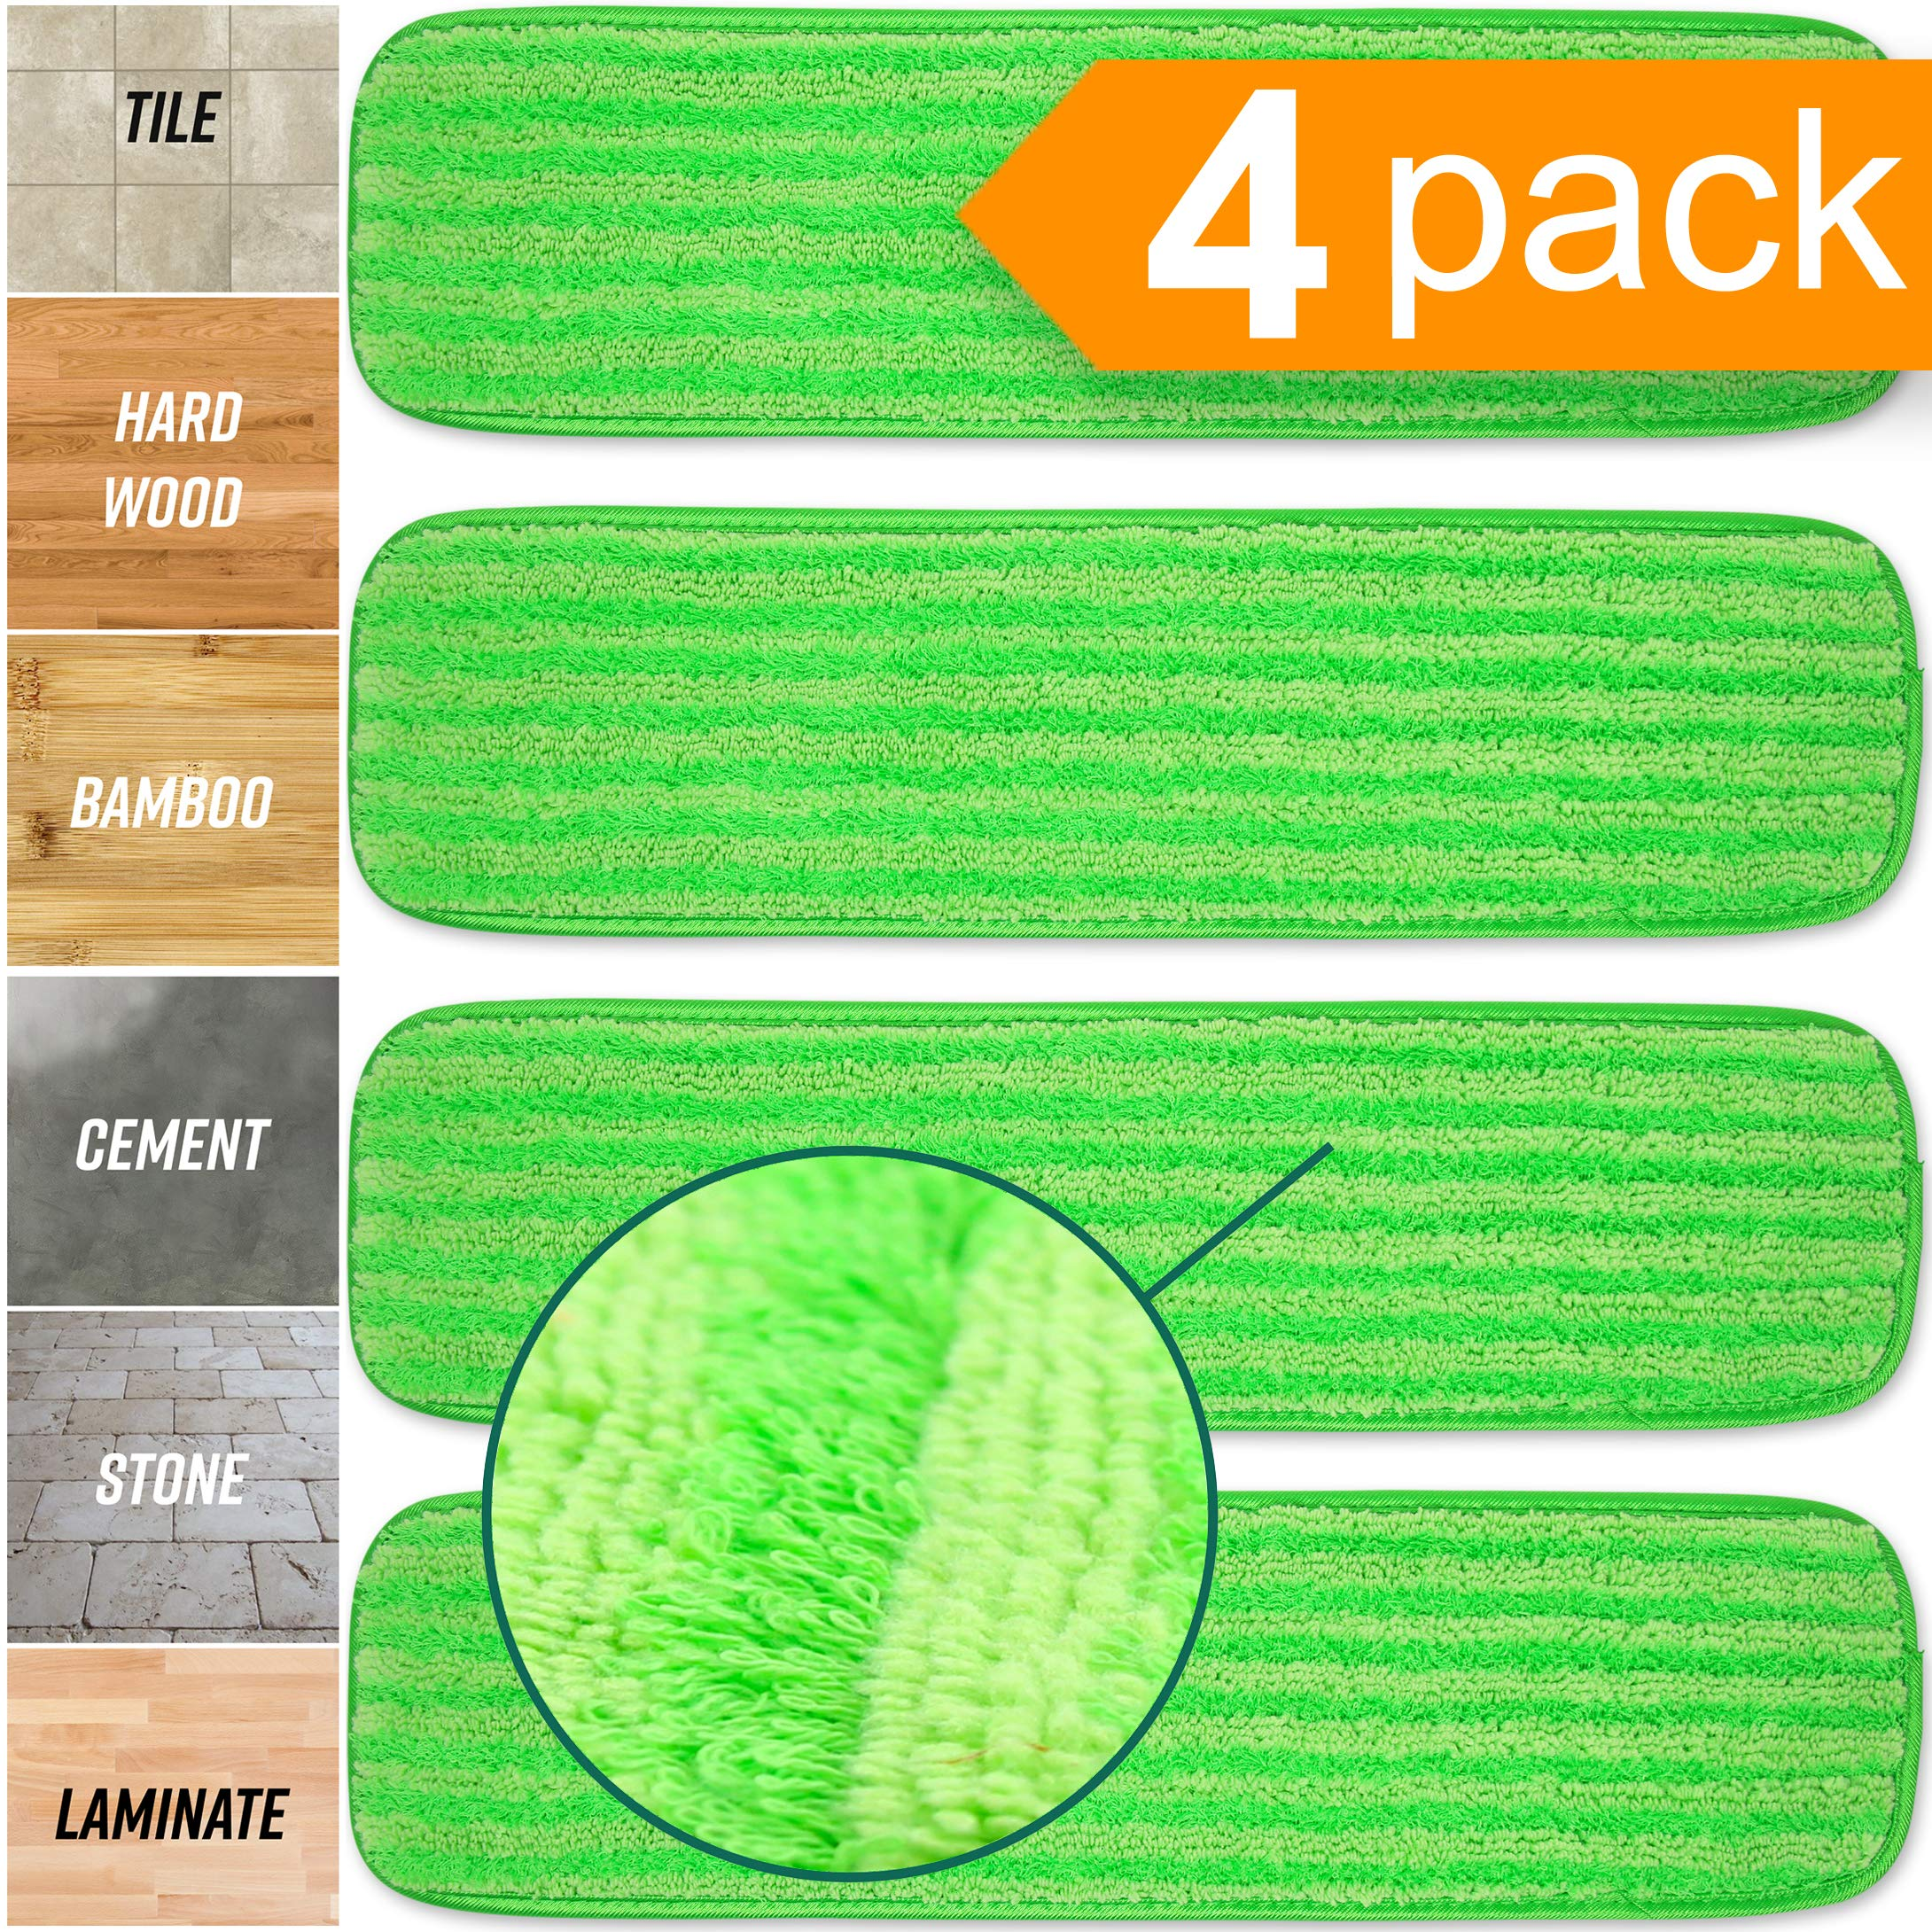 Microfiber Mop Pads 4 Pack - Reusable Washable Cloth Mop Head Replacements Best Thick Spray Wet Dust Dry Flat Velcro Attachment 18'' Inch - Cleaning Refill Fits Bona, Bruce, Rubbermaid, Libman + More by Turbo Microfiber